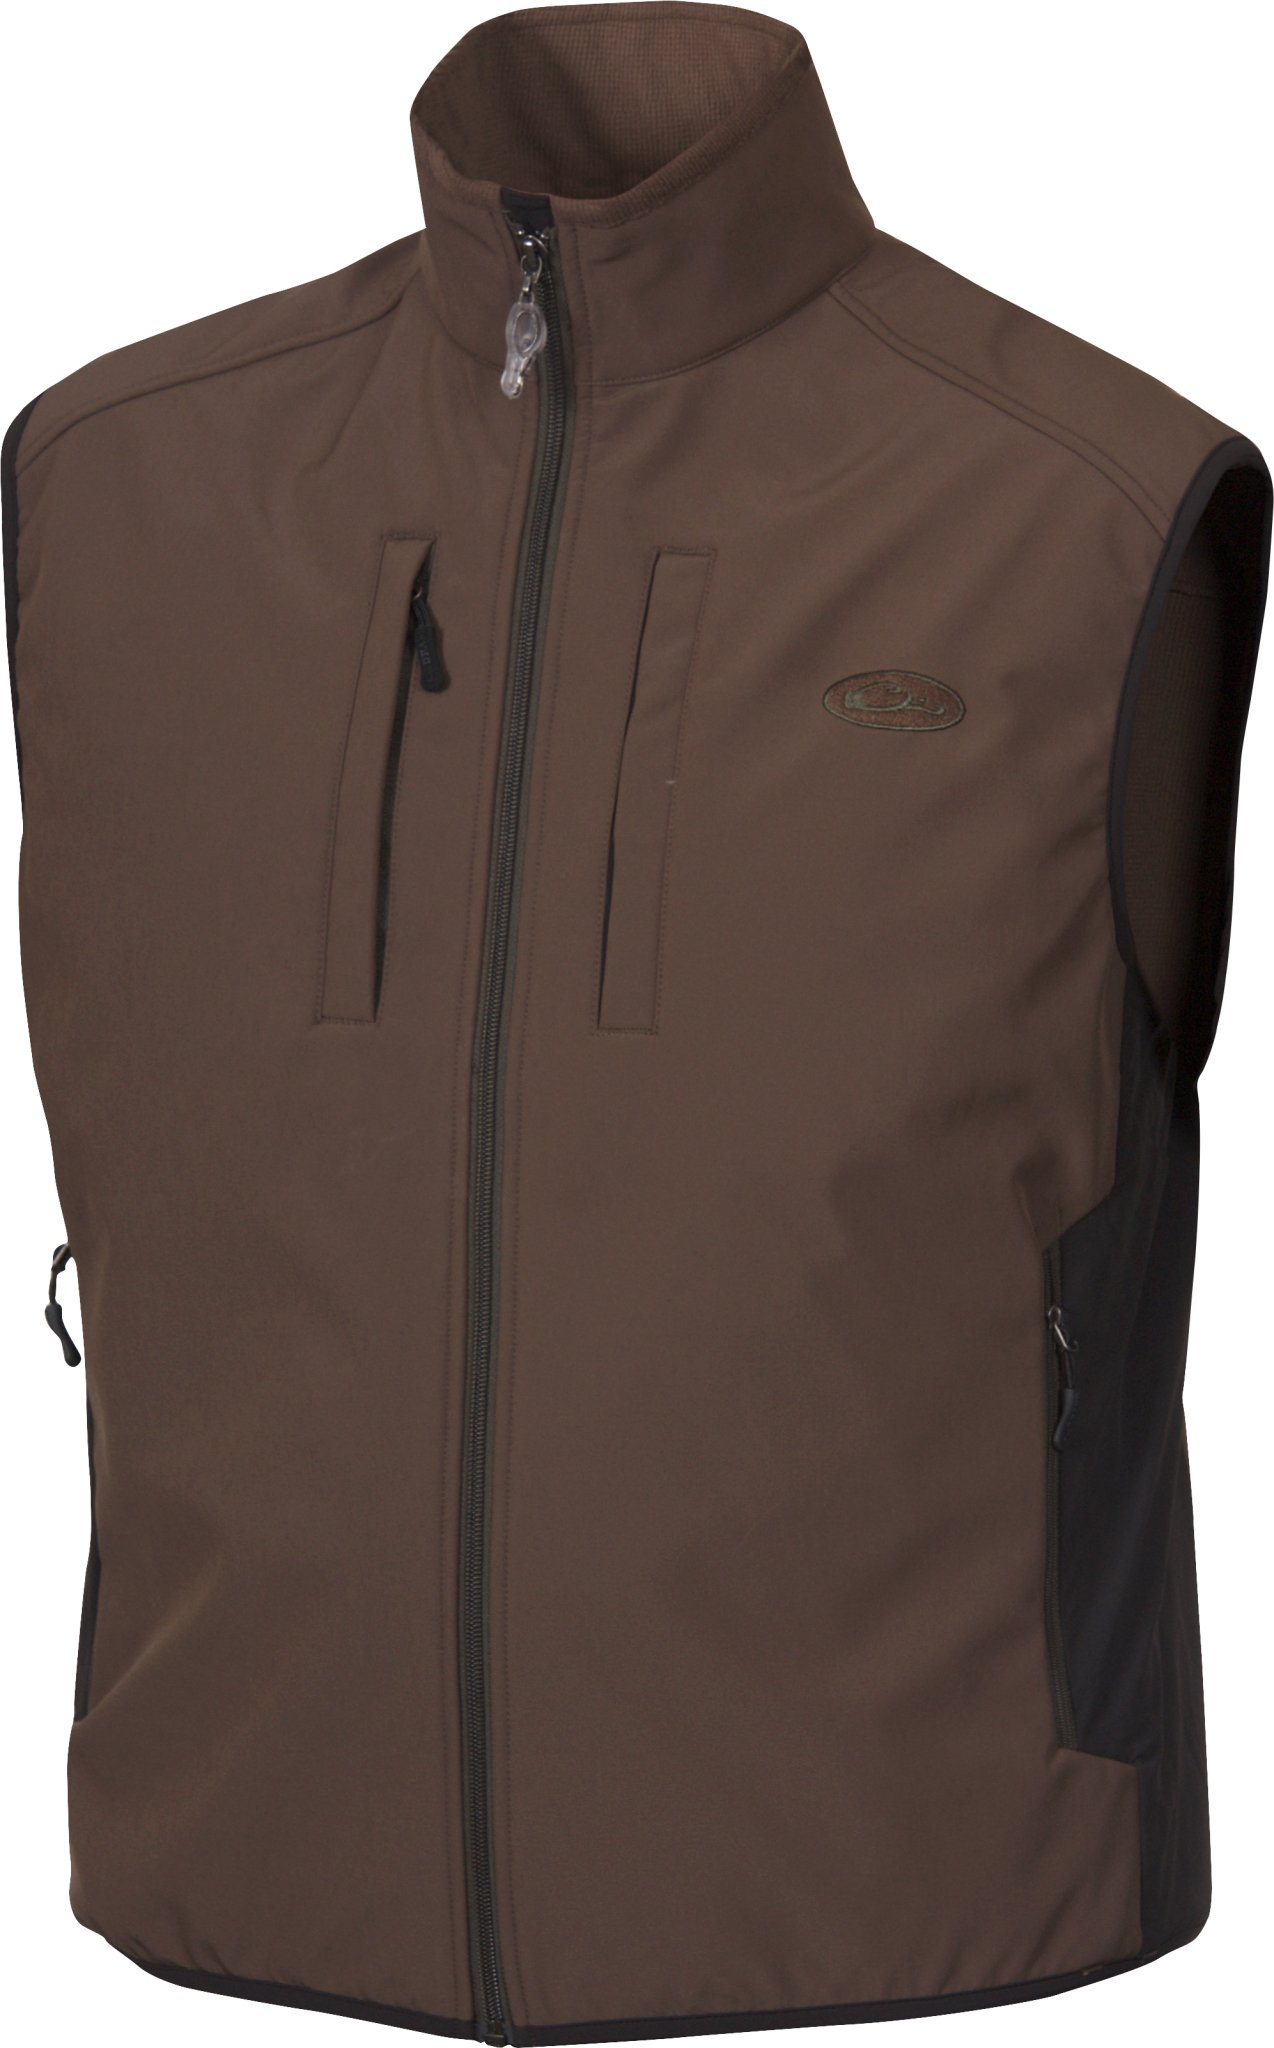 Drake Windproof Tech Brown Vest, X-Large by Drake